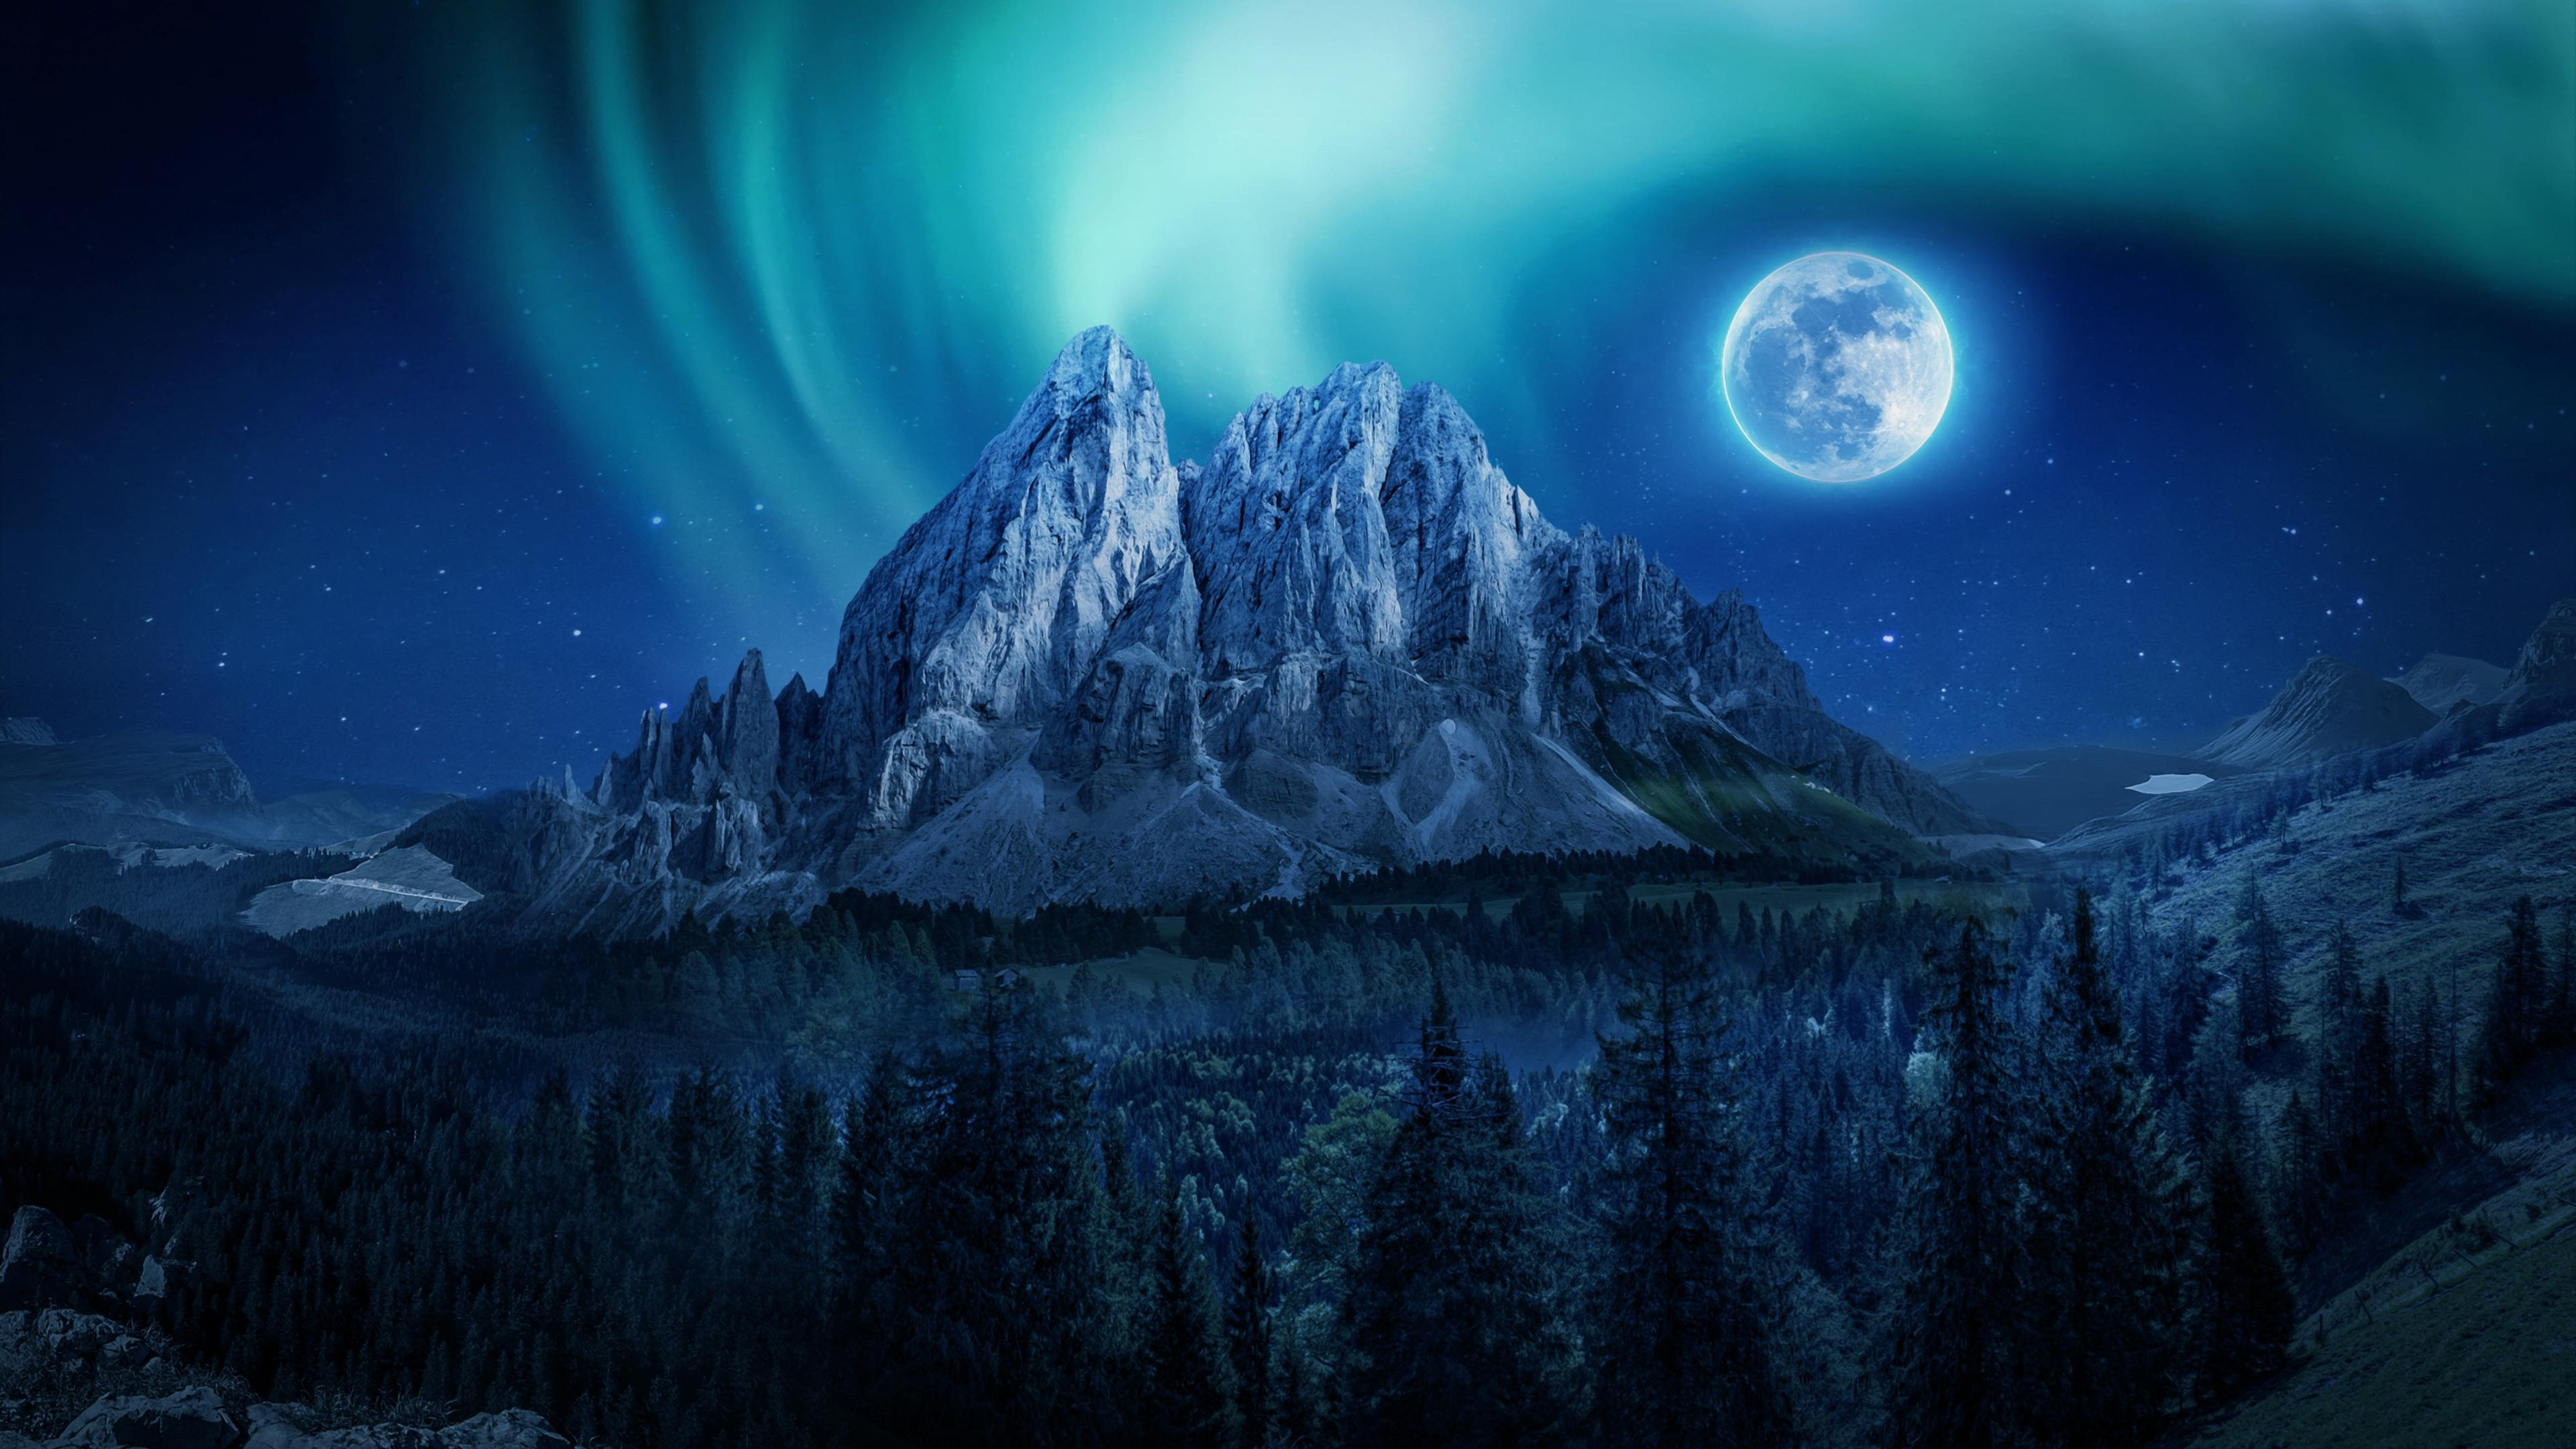 Mountain Moon Nightscape Wallpapers Wallpaper Cave